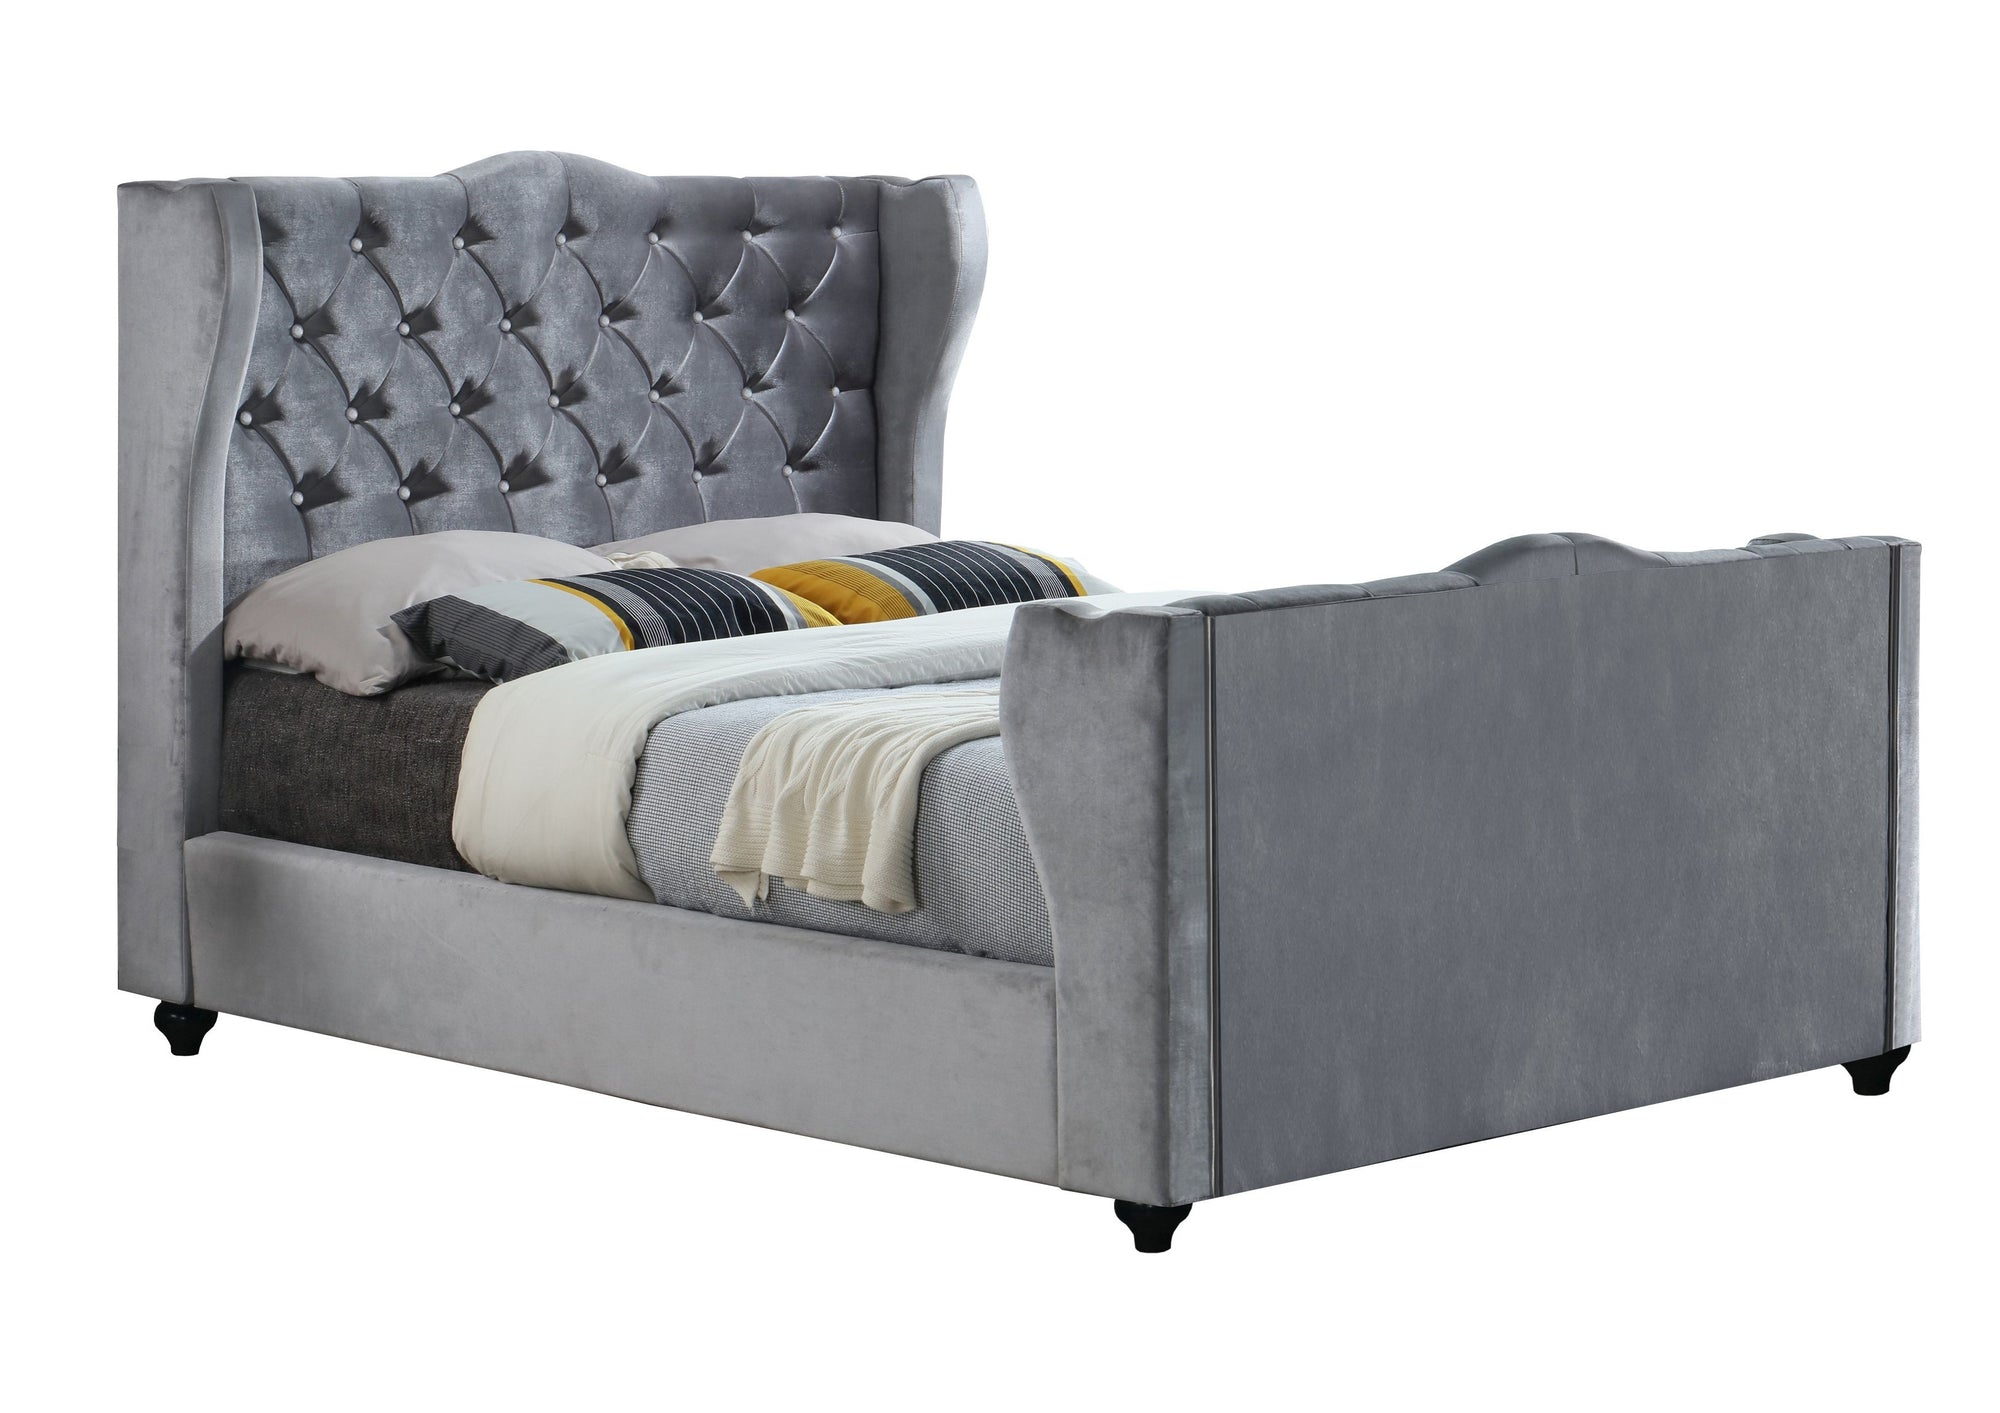 Majestic Chesterfield Upholstered Sleigh Bed Sleigh Bed Chic Concept